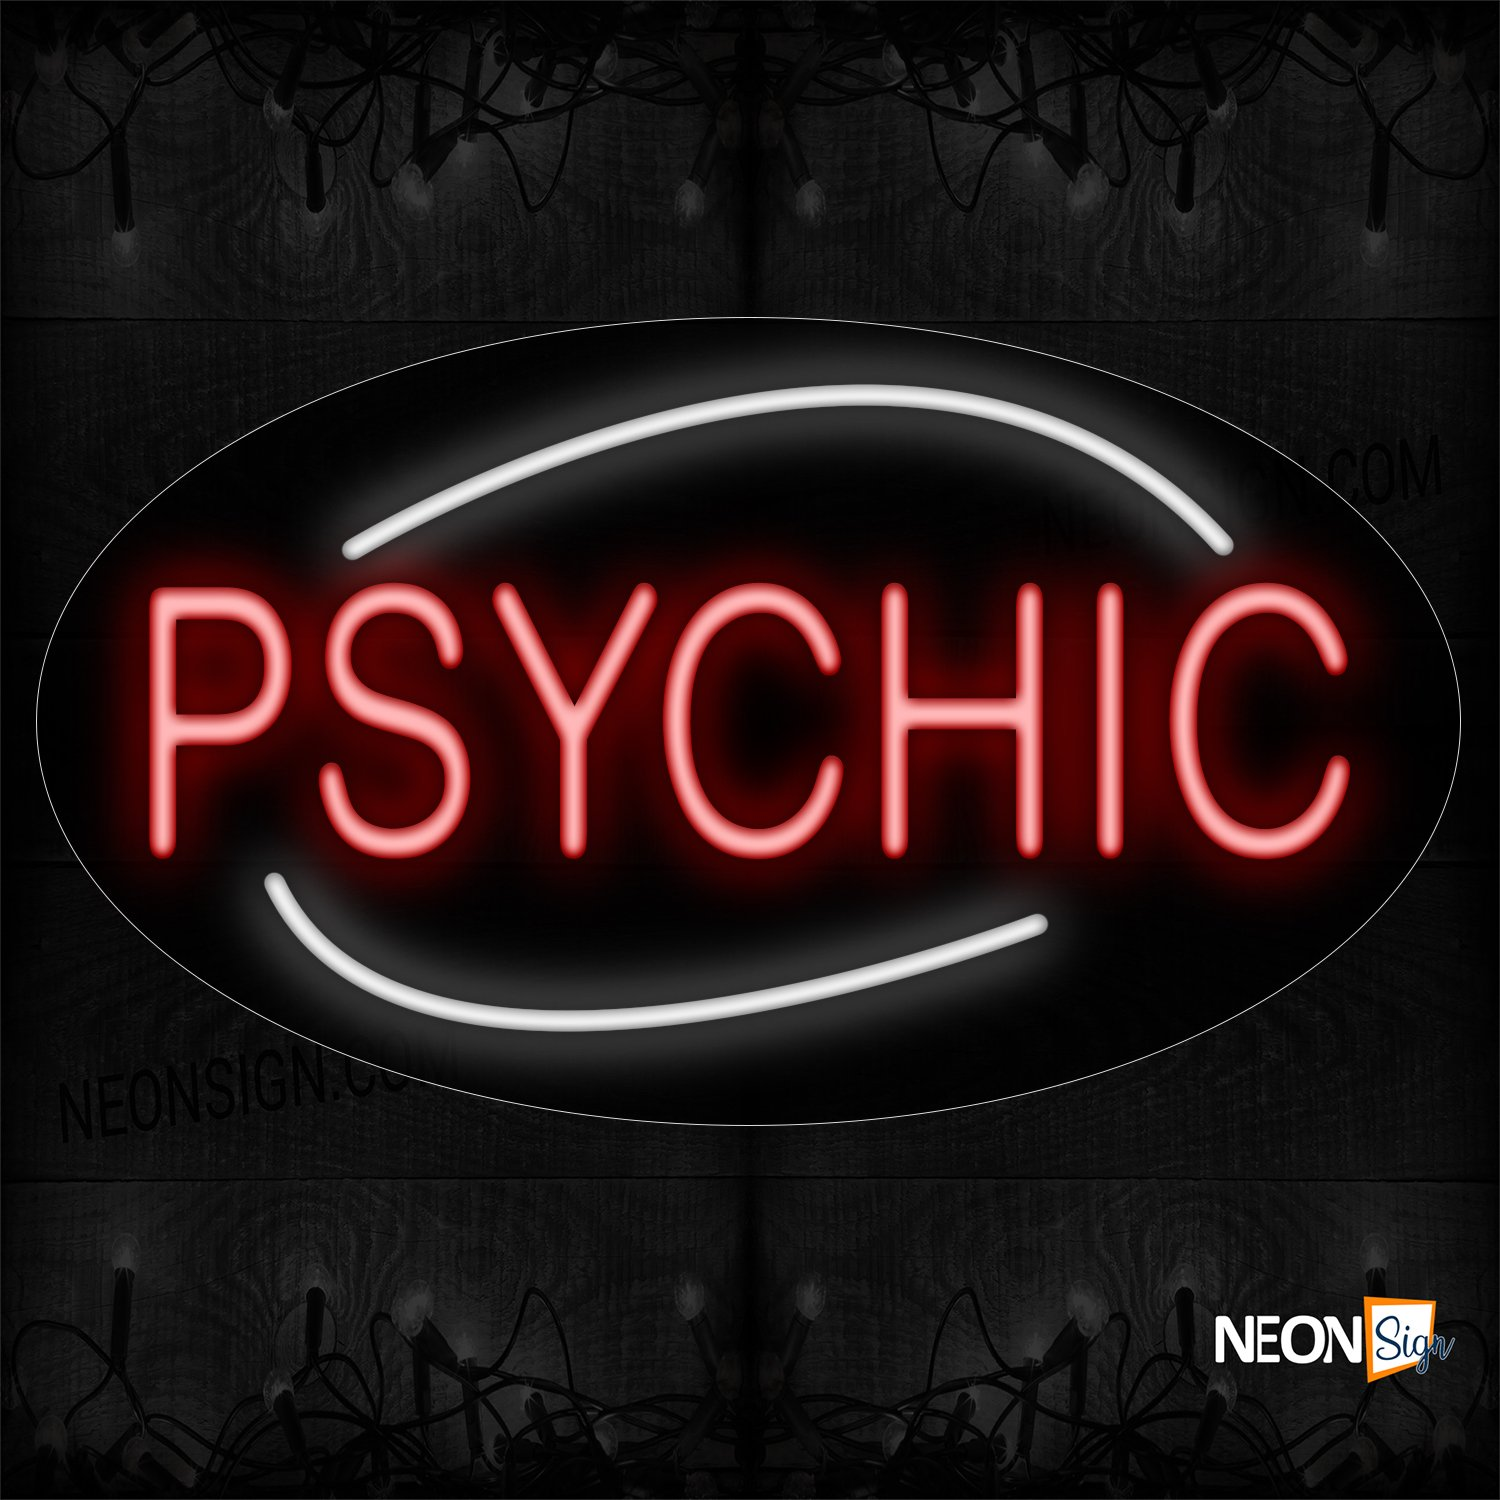 Image of 14281 Psychic In Red With White Arc Border Neon Sign_17x30 Black Backing